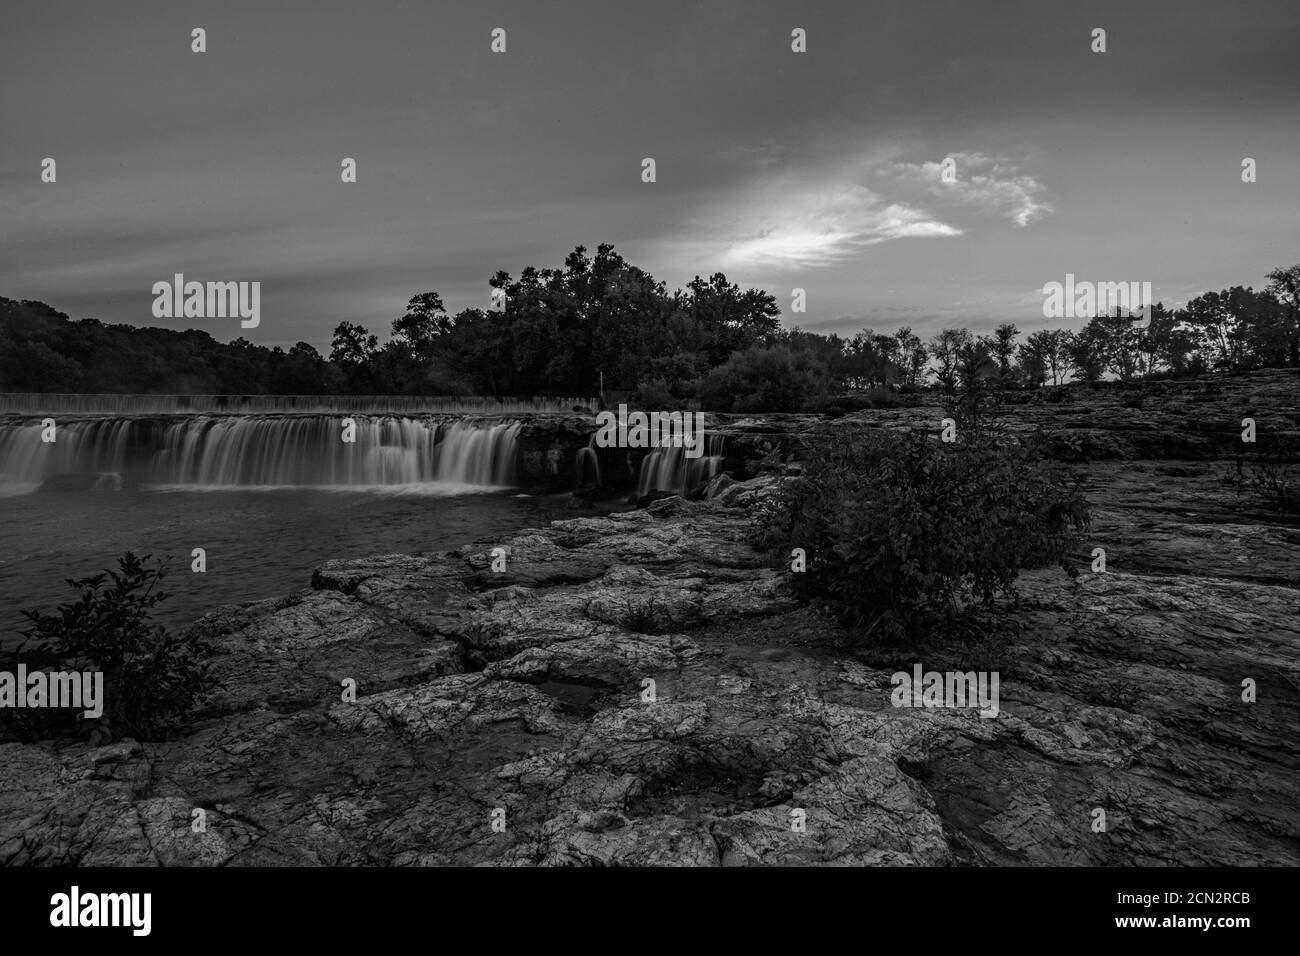 Grand Falls waterfall is the largest continuously flowing natural waterfall in Missouri. It is located in Joplin in the southwest region of Missouri. Stock Photo